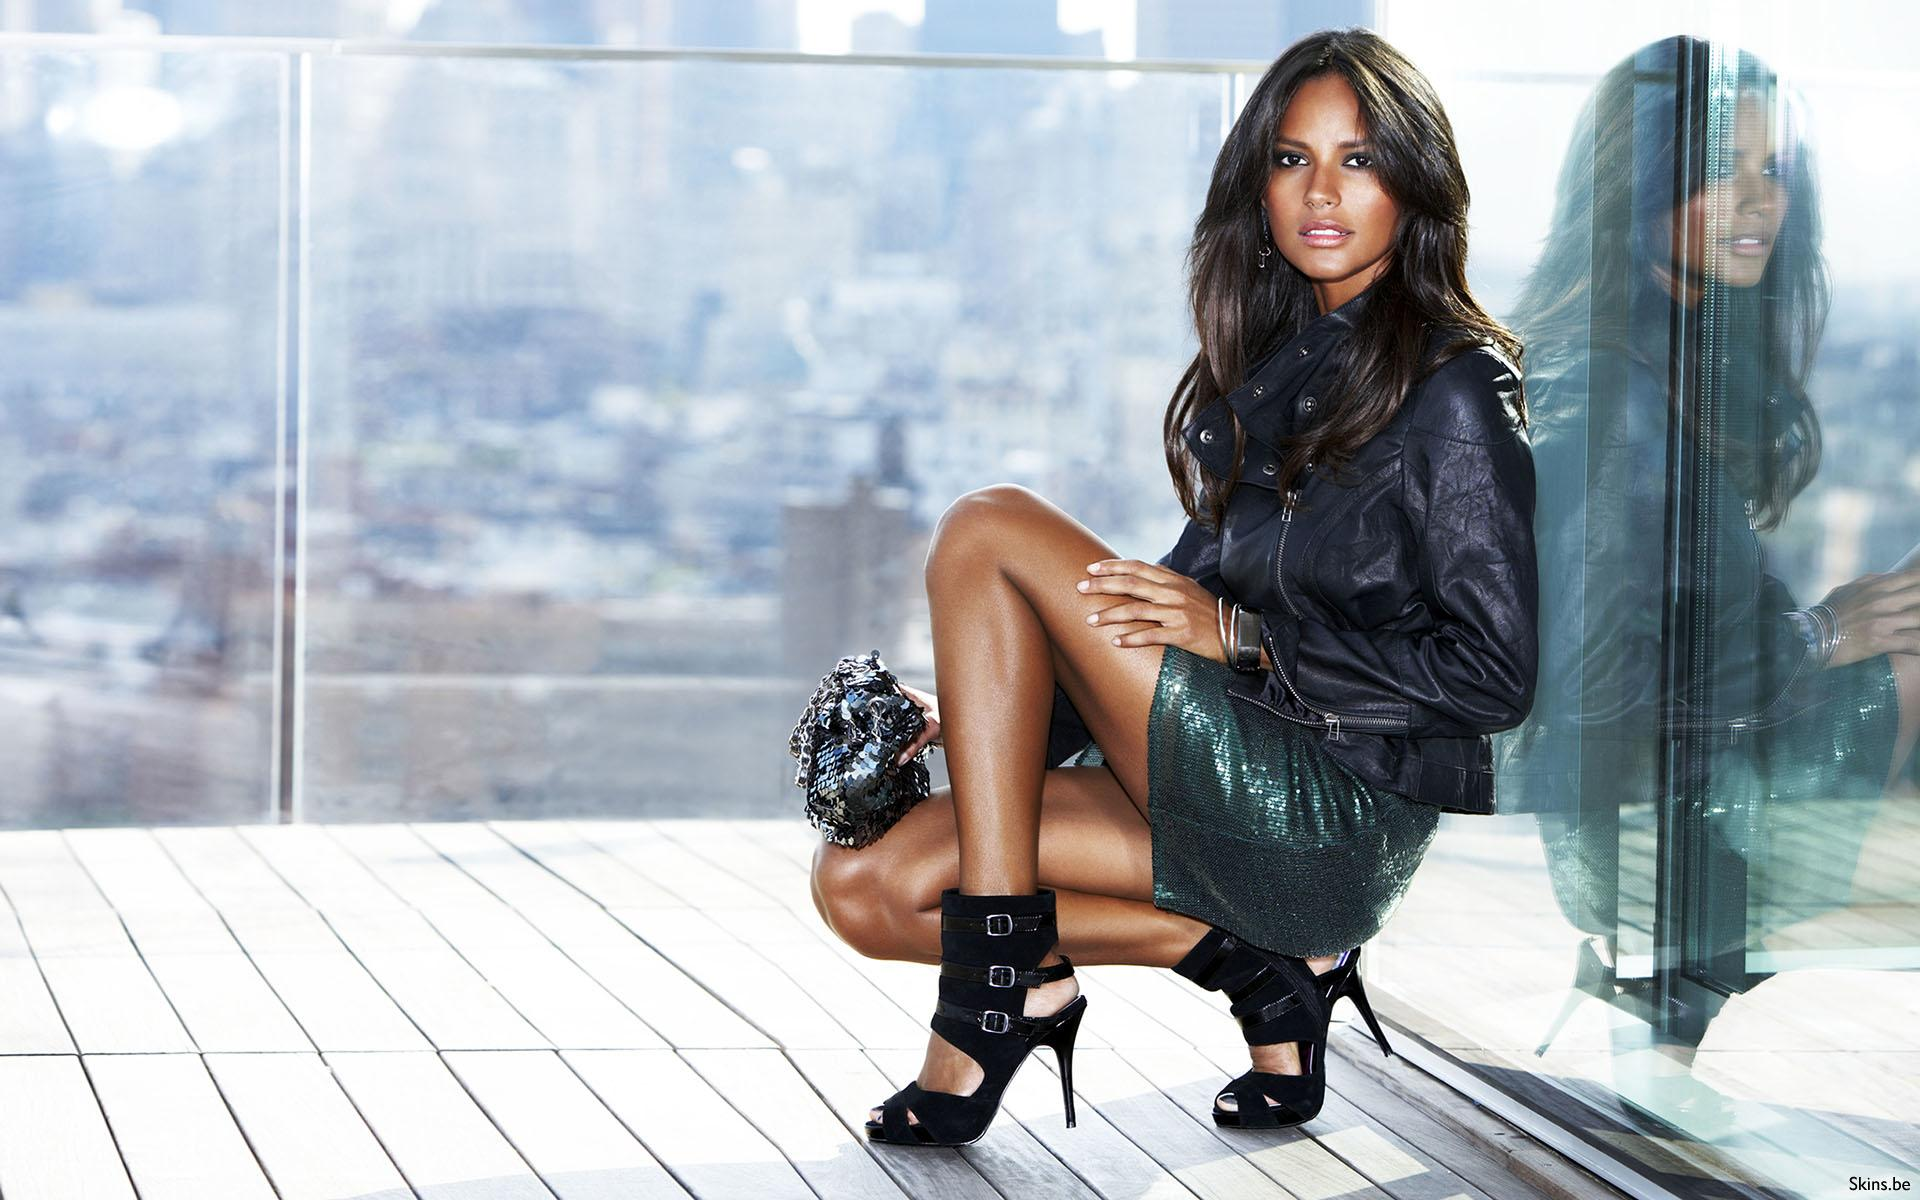 Emanuela De Paula wallpapers HD quality